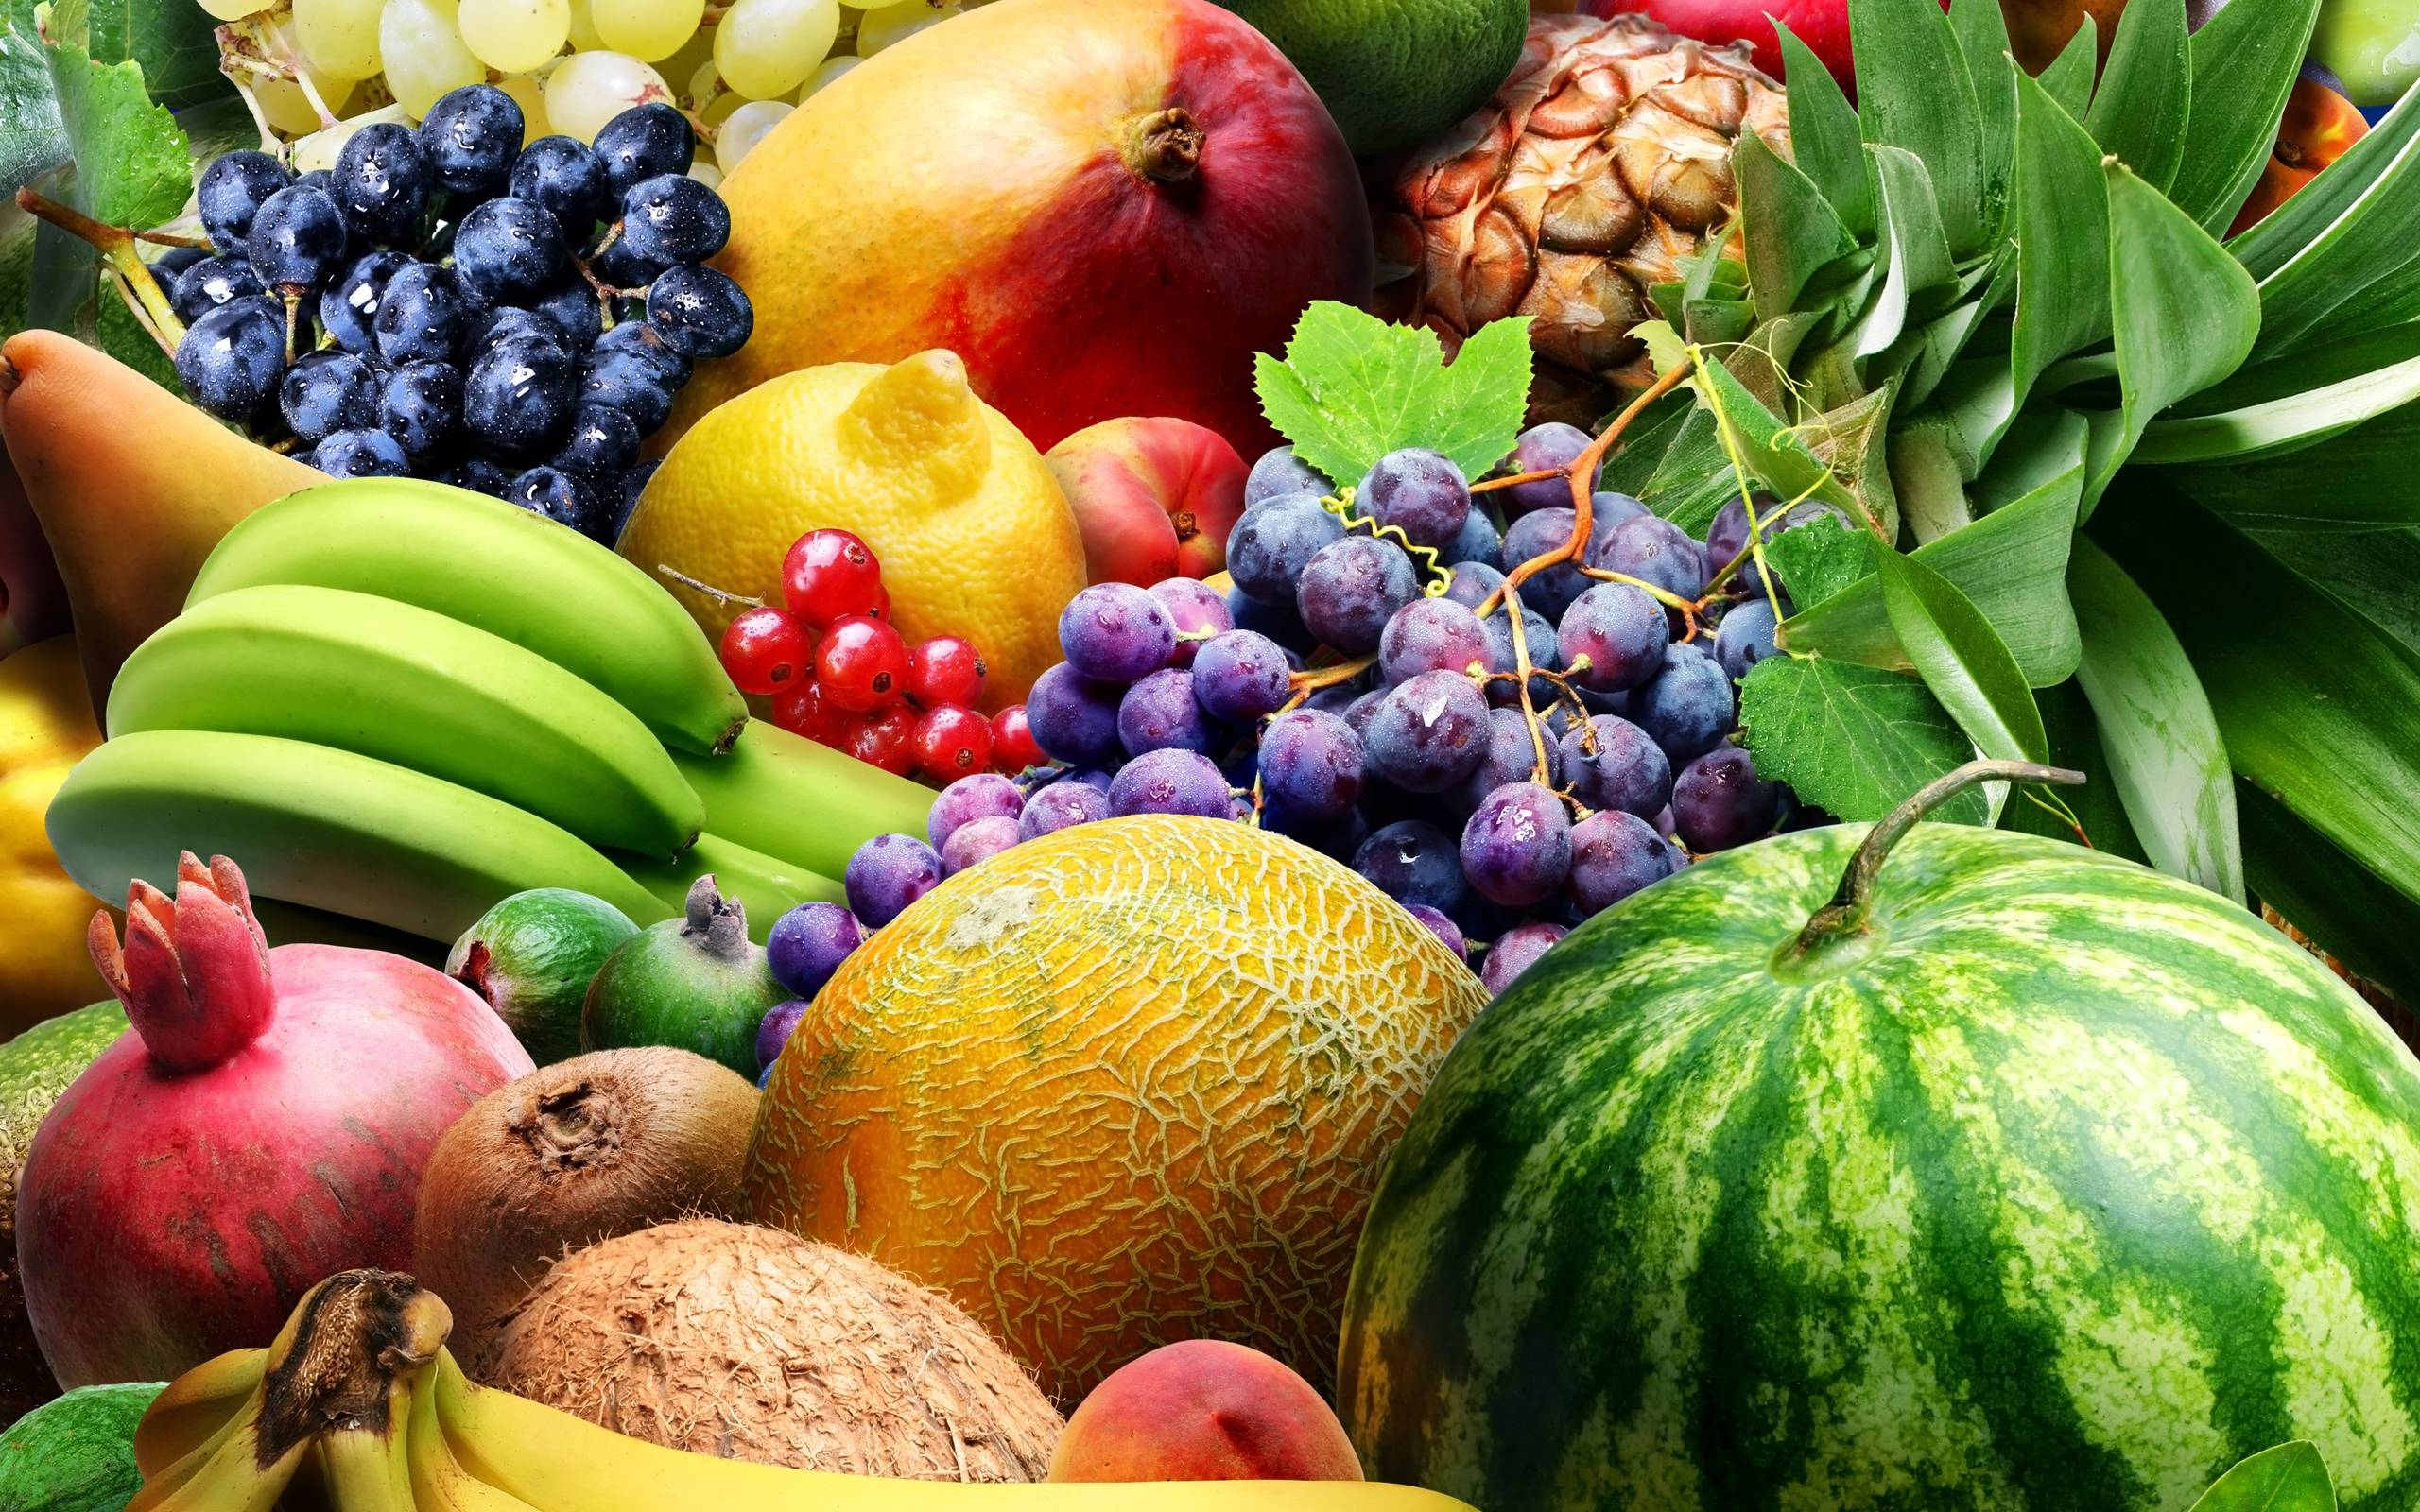 Wallpaper hd fruits - 336 Fruit Wallpapers Fruit Backgrounds Page 4